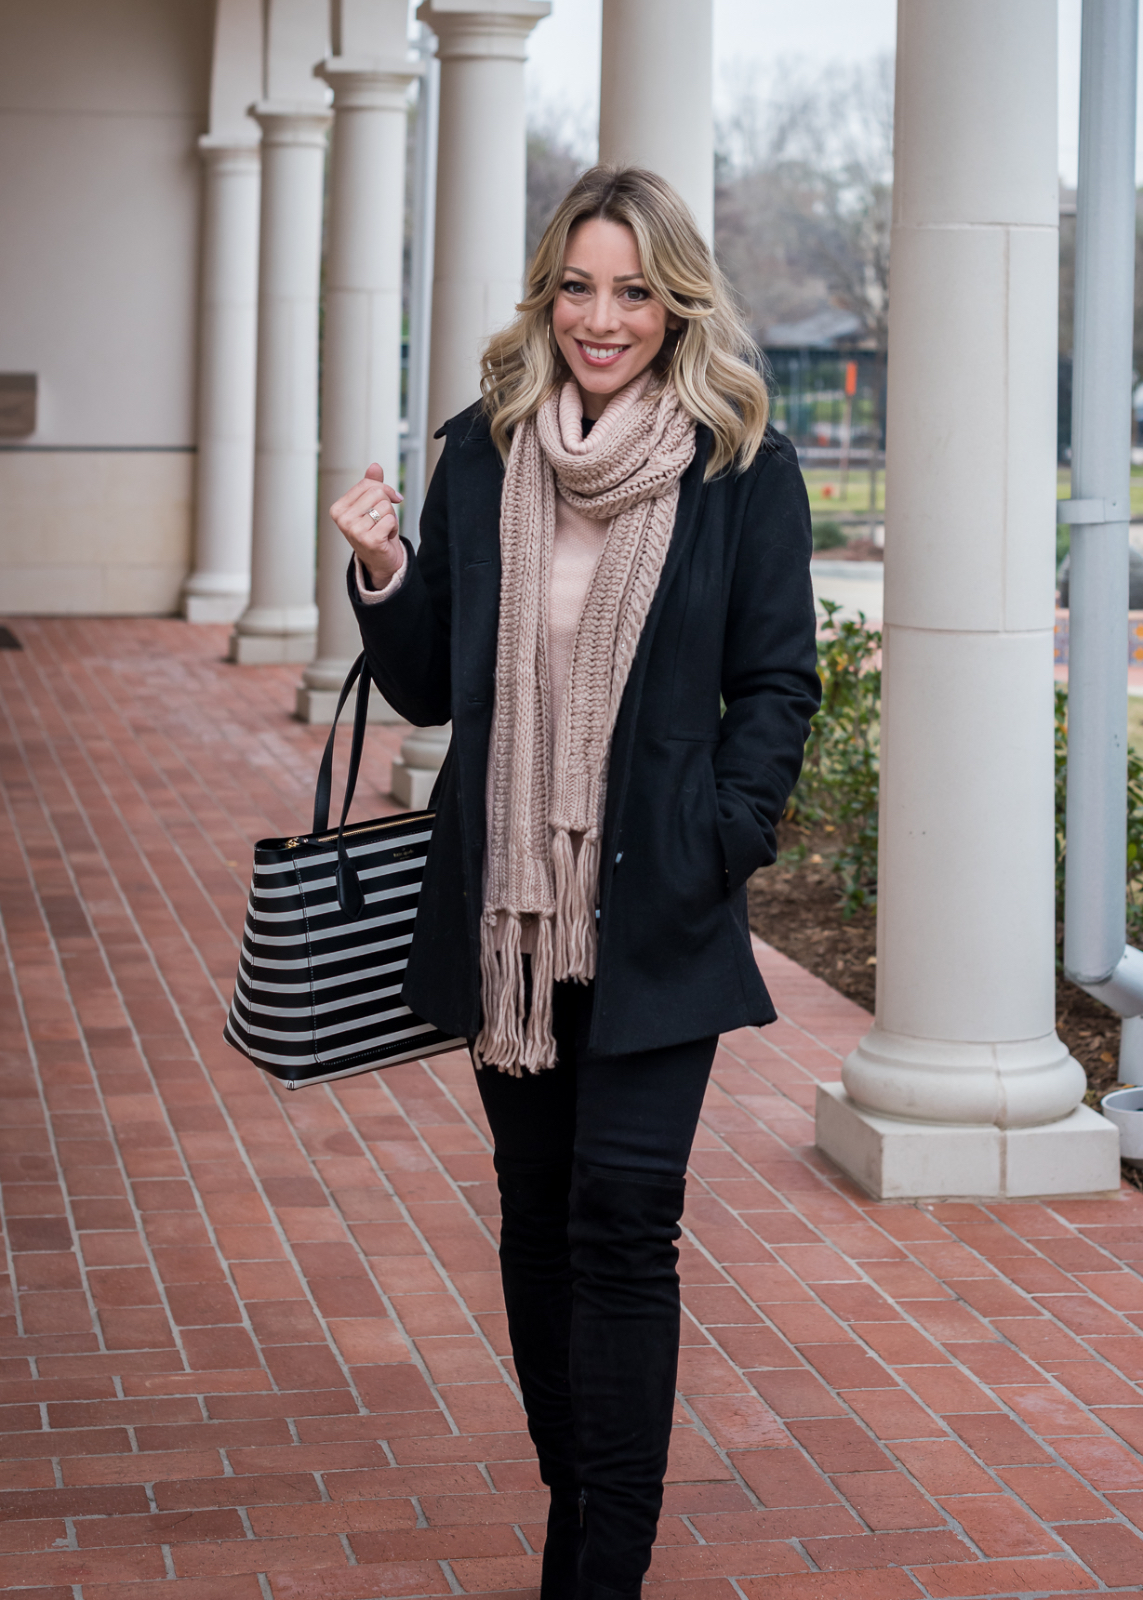 Cute winter outfit with peacoat and pink scarf